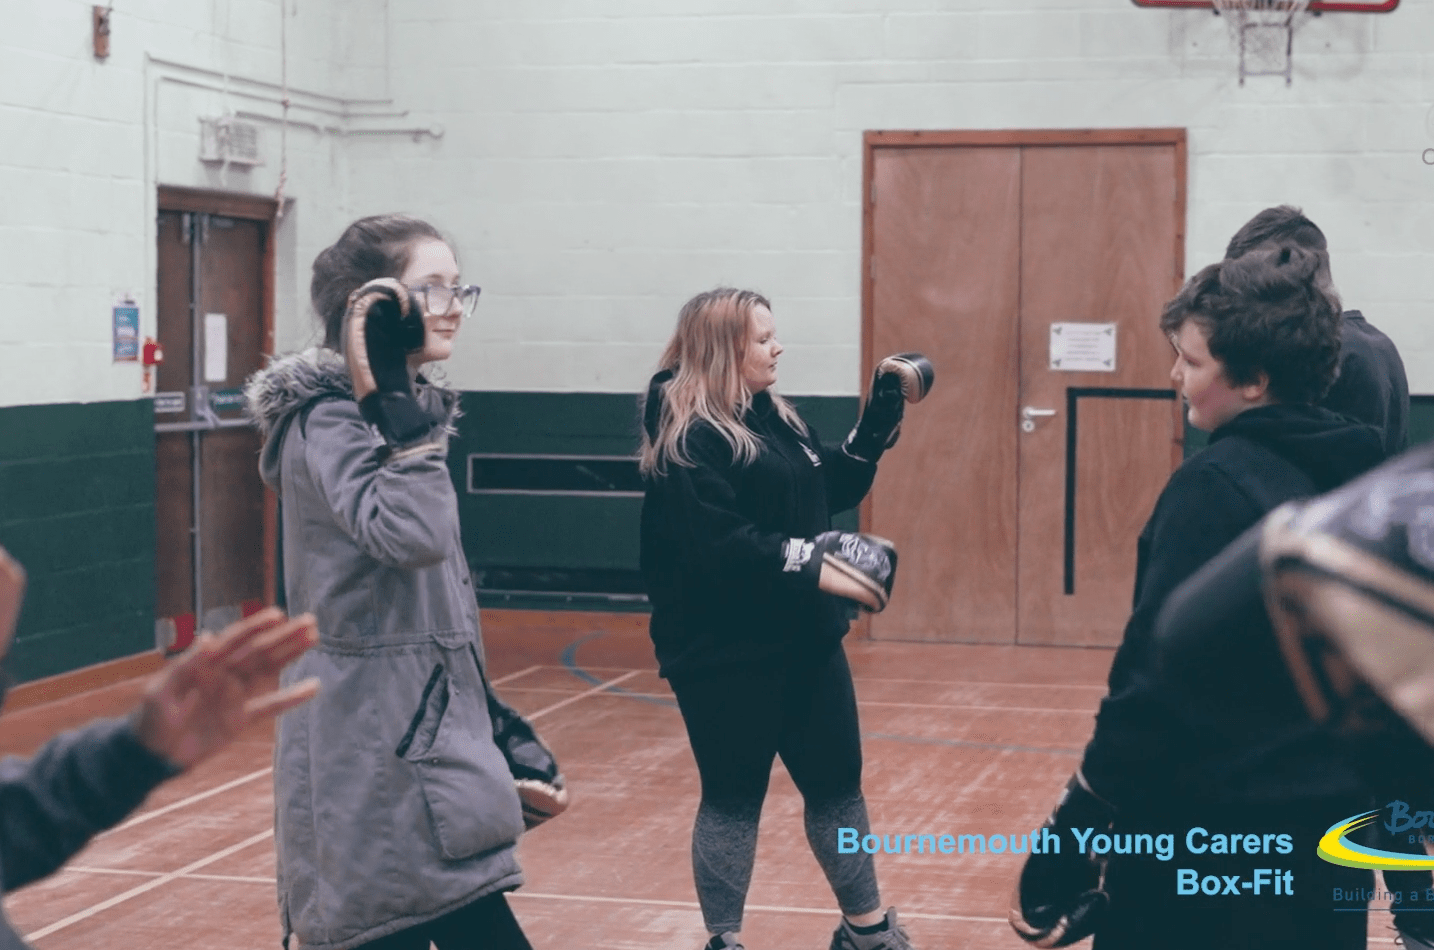 young carers participating in boxing session